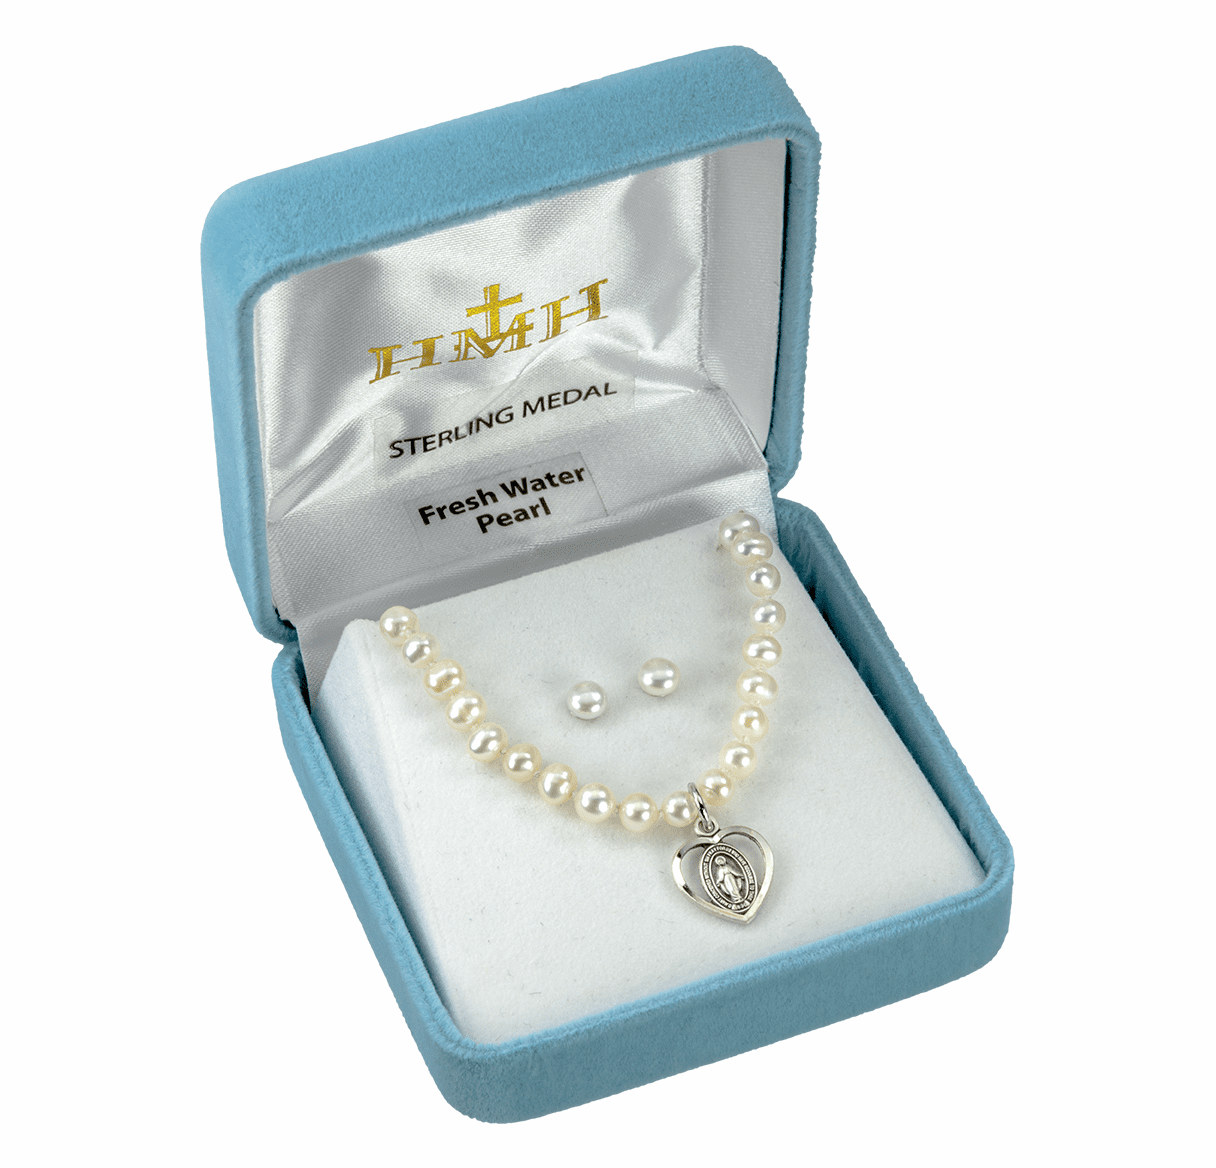 HMH Religious Jewelry Gift Sets